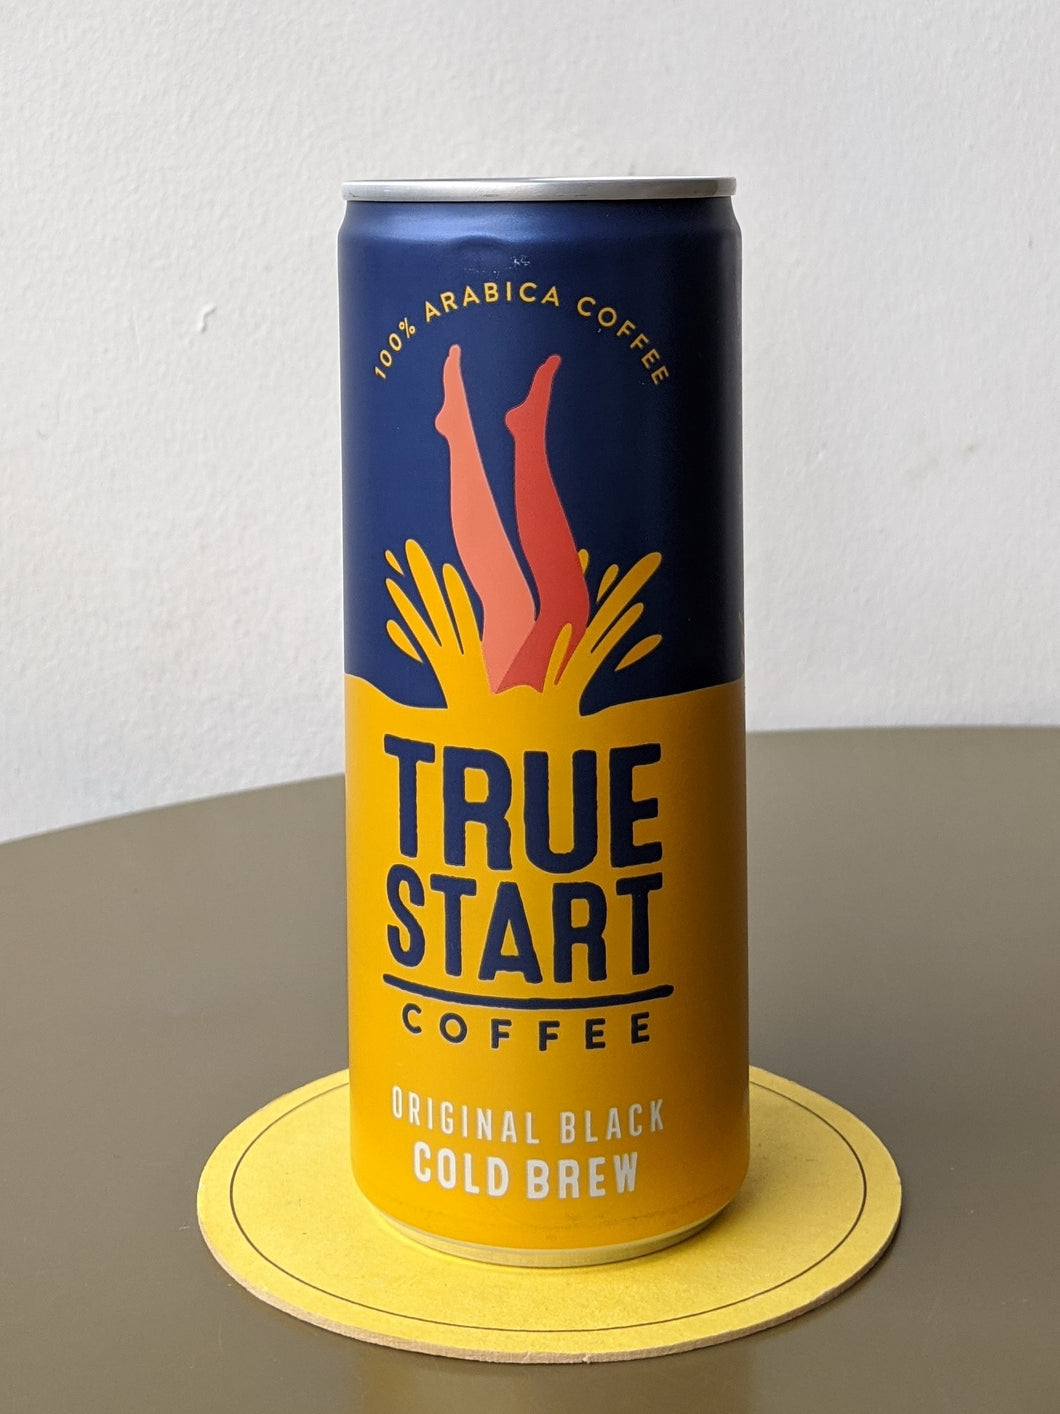 True Start Coffee, Original Black Cold Brew, 250ml